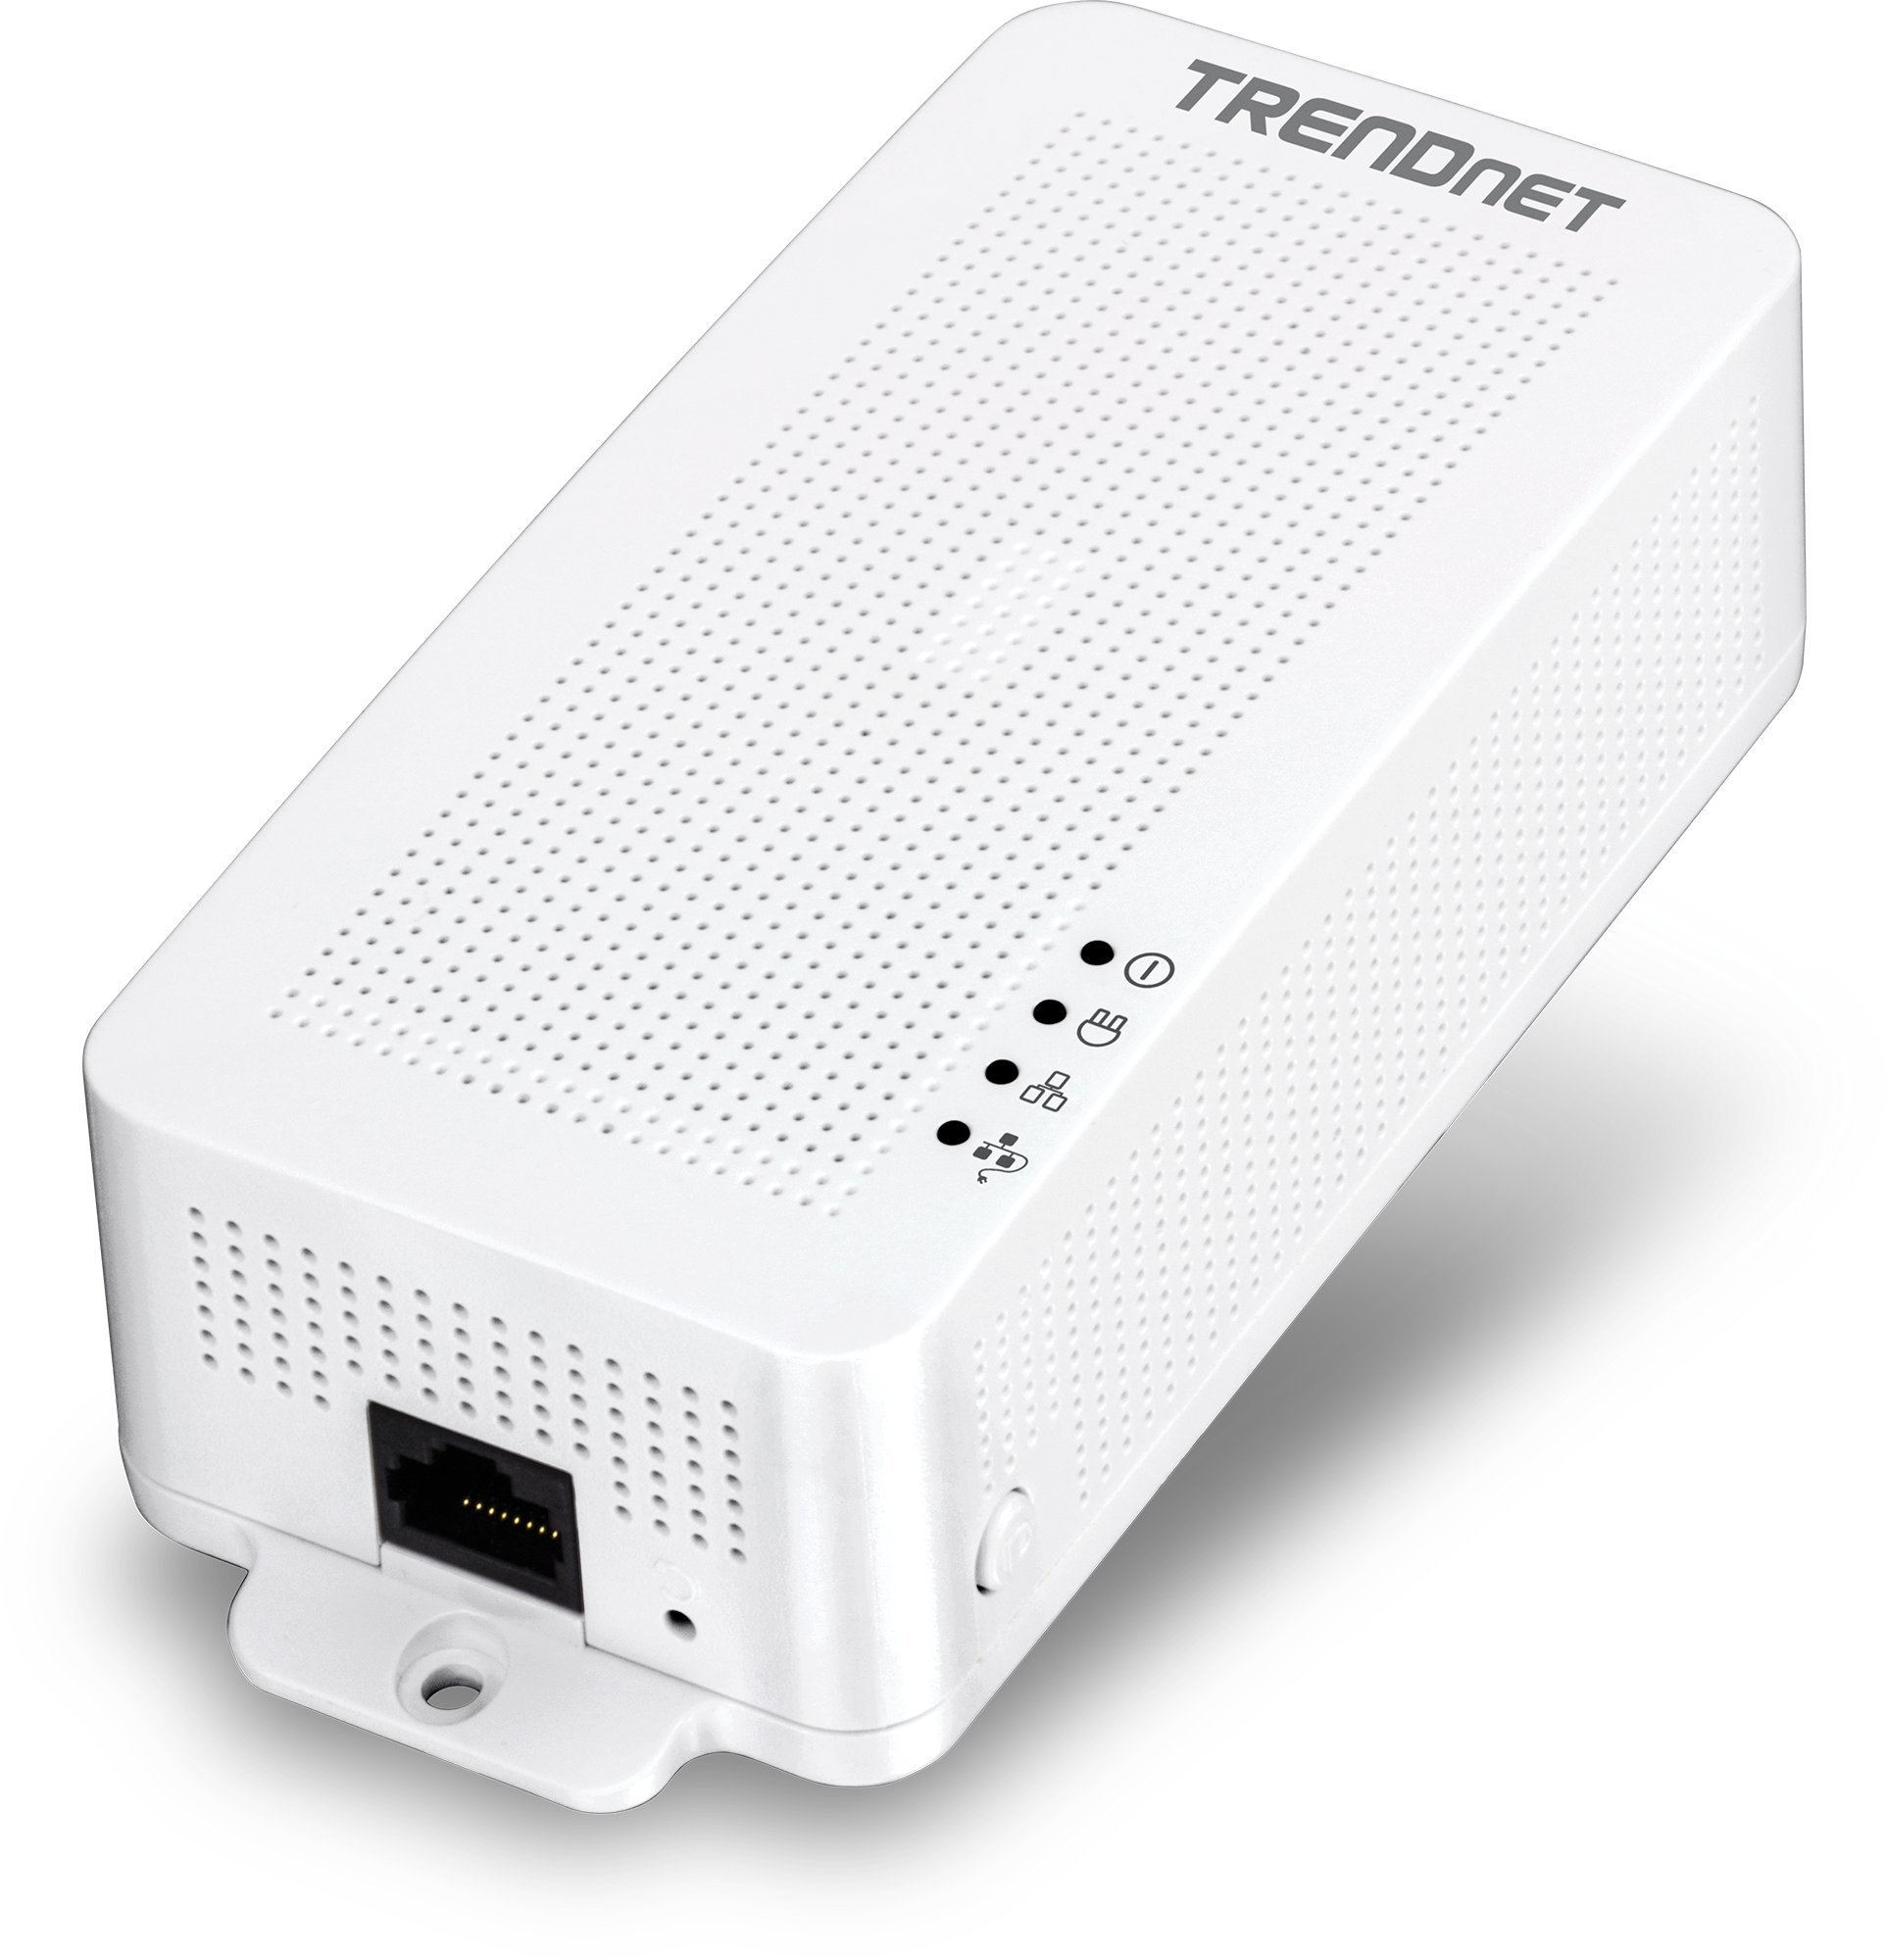 TRENDnet Powerline 200 AV PoE+ Adapter, PoE+ Output Port Supports PoE (15.4W) and PoE+ (30W) Devices, Range up to 300m (984 ft.), TPL-331EP